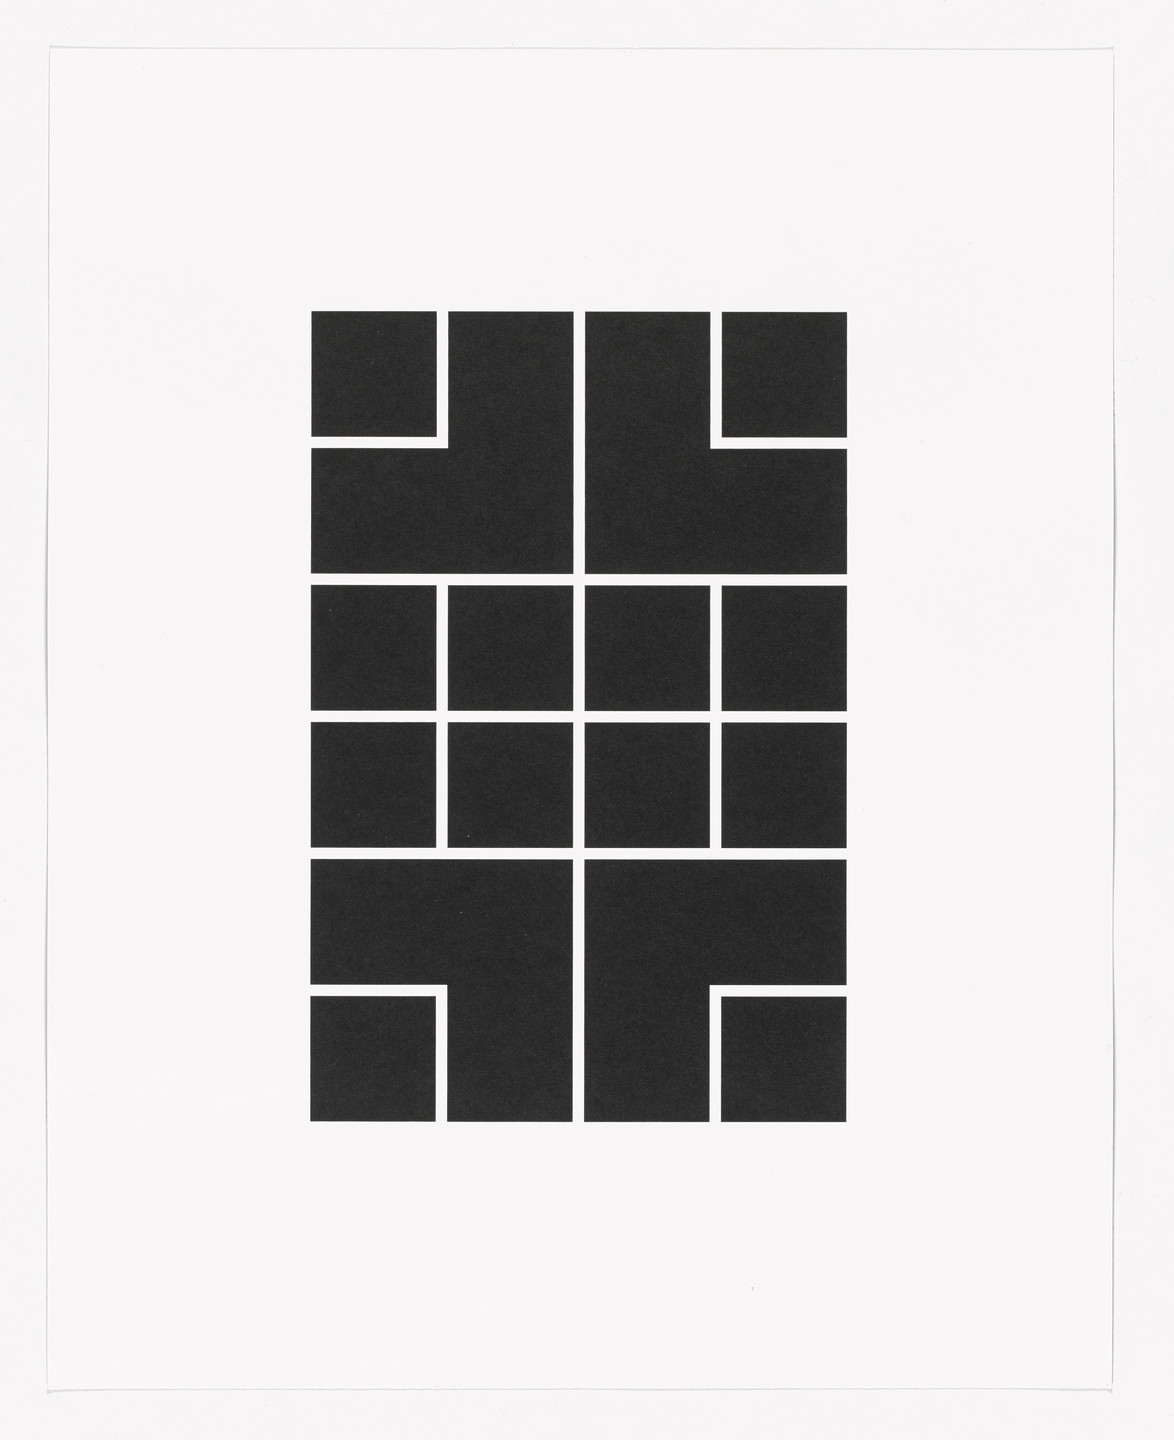 Tauba Auerbach. Square Cloud from Type Specimen Portfolio. 2009, printed 2013